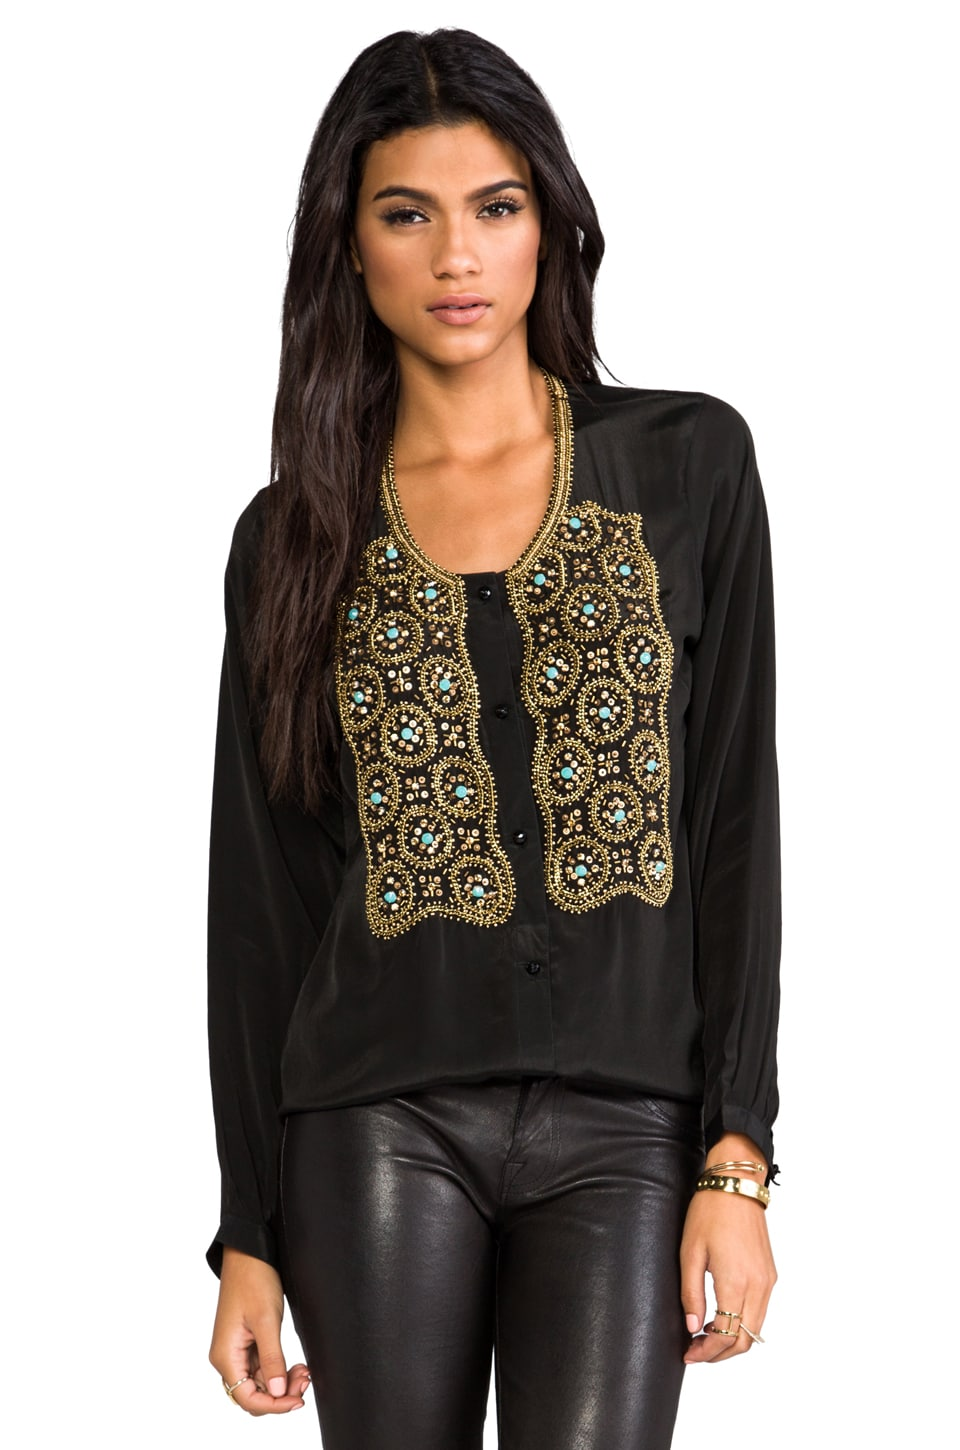 Karina Grimaldi Beaded Hera Top in Black